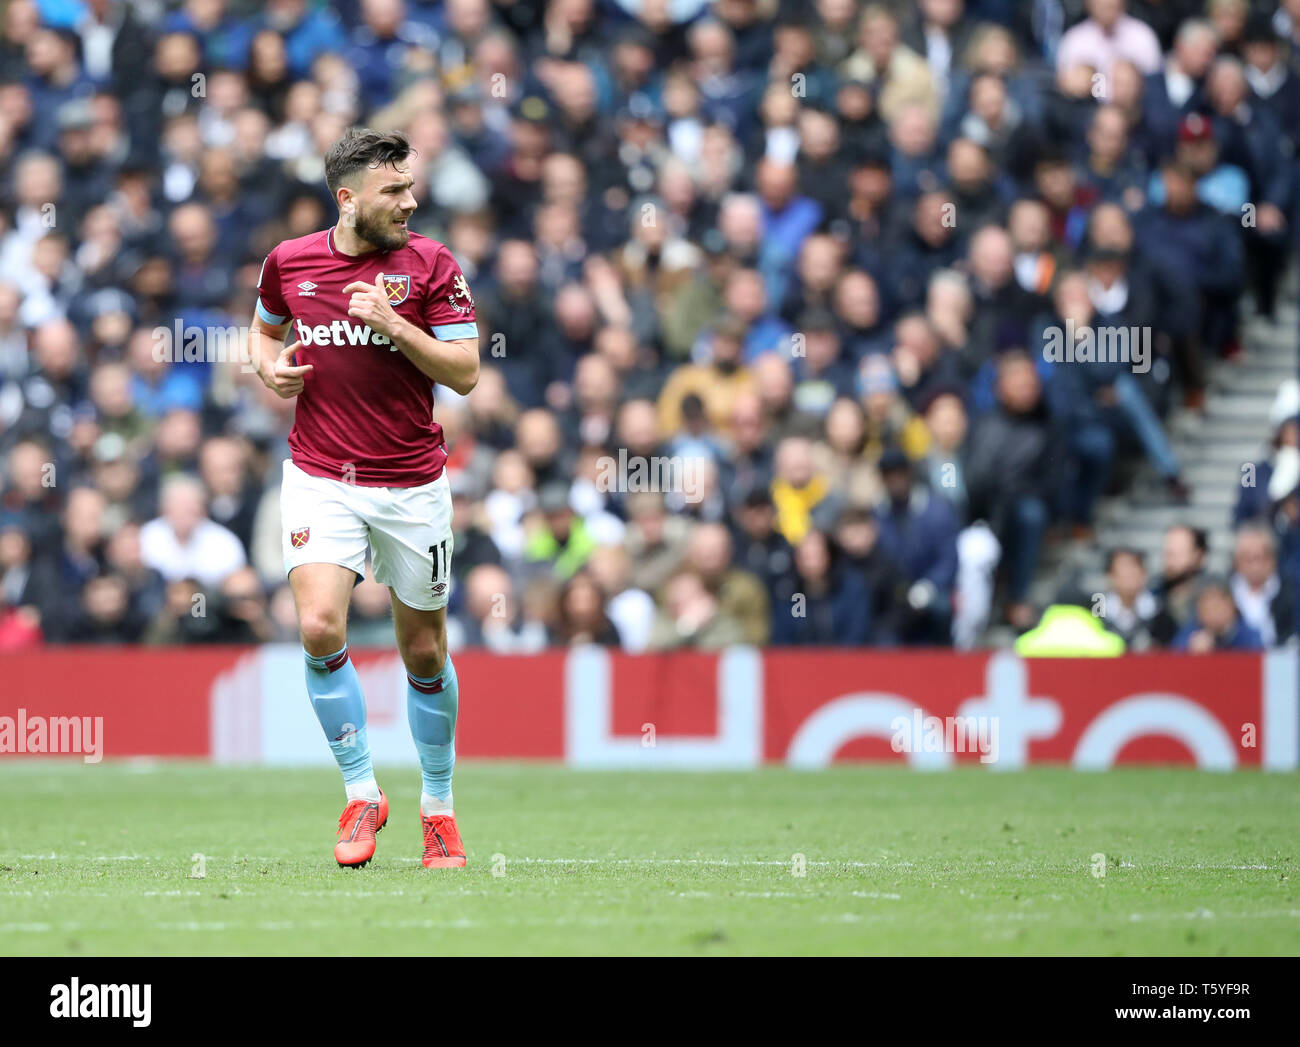 London, UK. 27th Apr 2019. Robert Snodgrass (WHU) at the Tottenham Hotspur v West Ham United English Premier League match, at The Tottenham Hotspur Stadium, London, UK on April 27, 2019. **Editorial use only, license required for commercial use. No use in betting, games or a single club/league/player publications** Credit: Paul Marriott/Alamy Live News - Stock Image